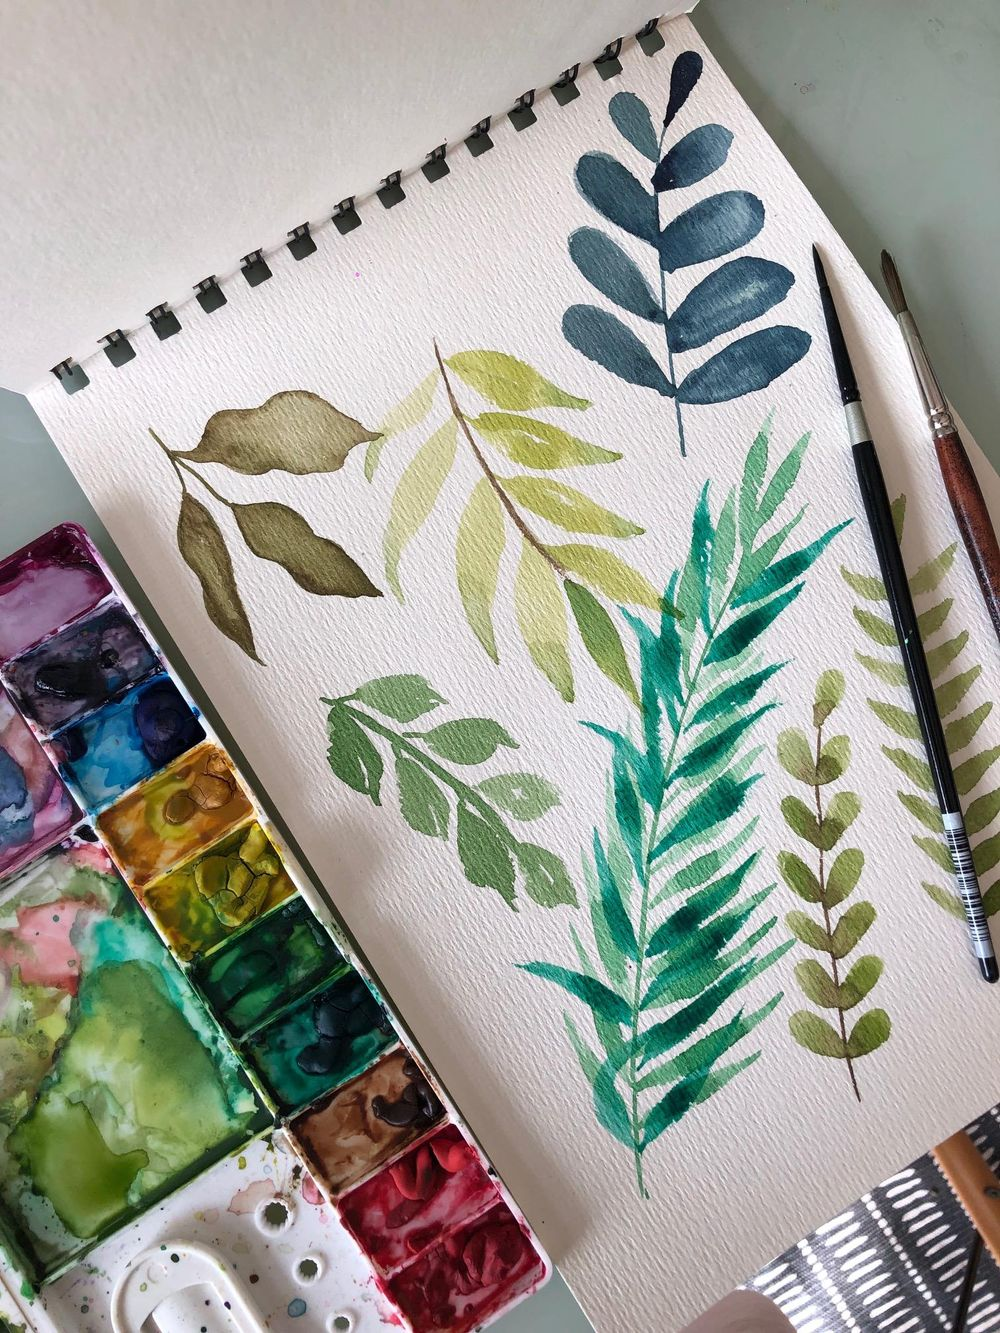 Pretty leaves - image 1 - student project